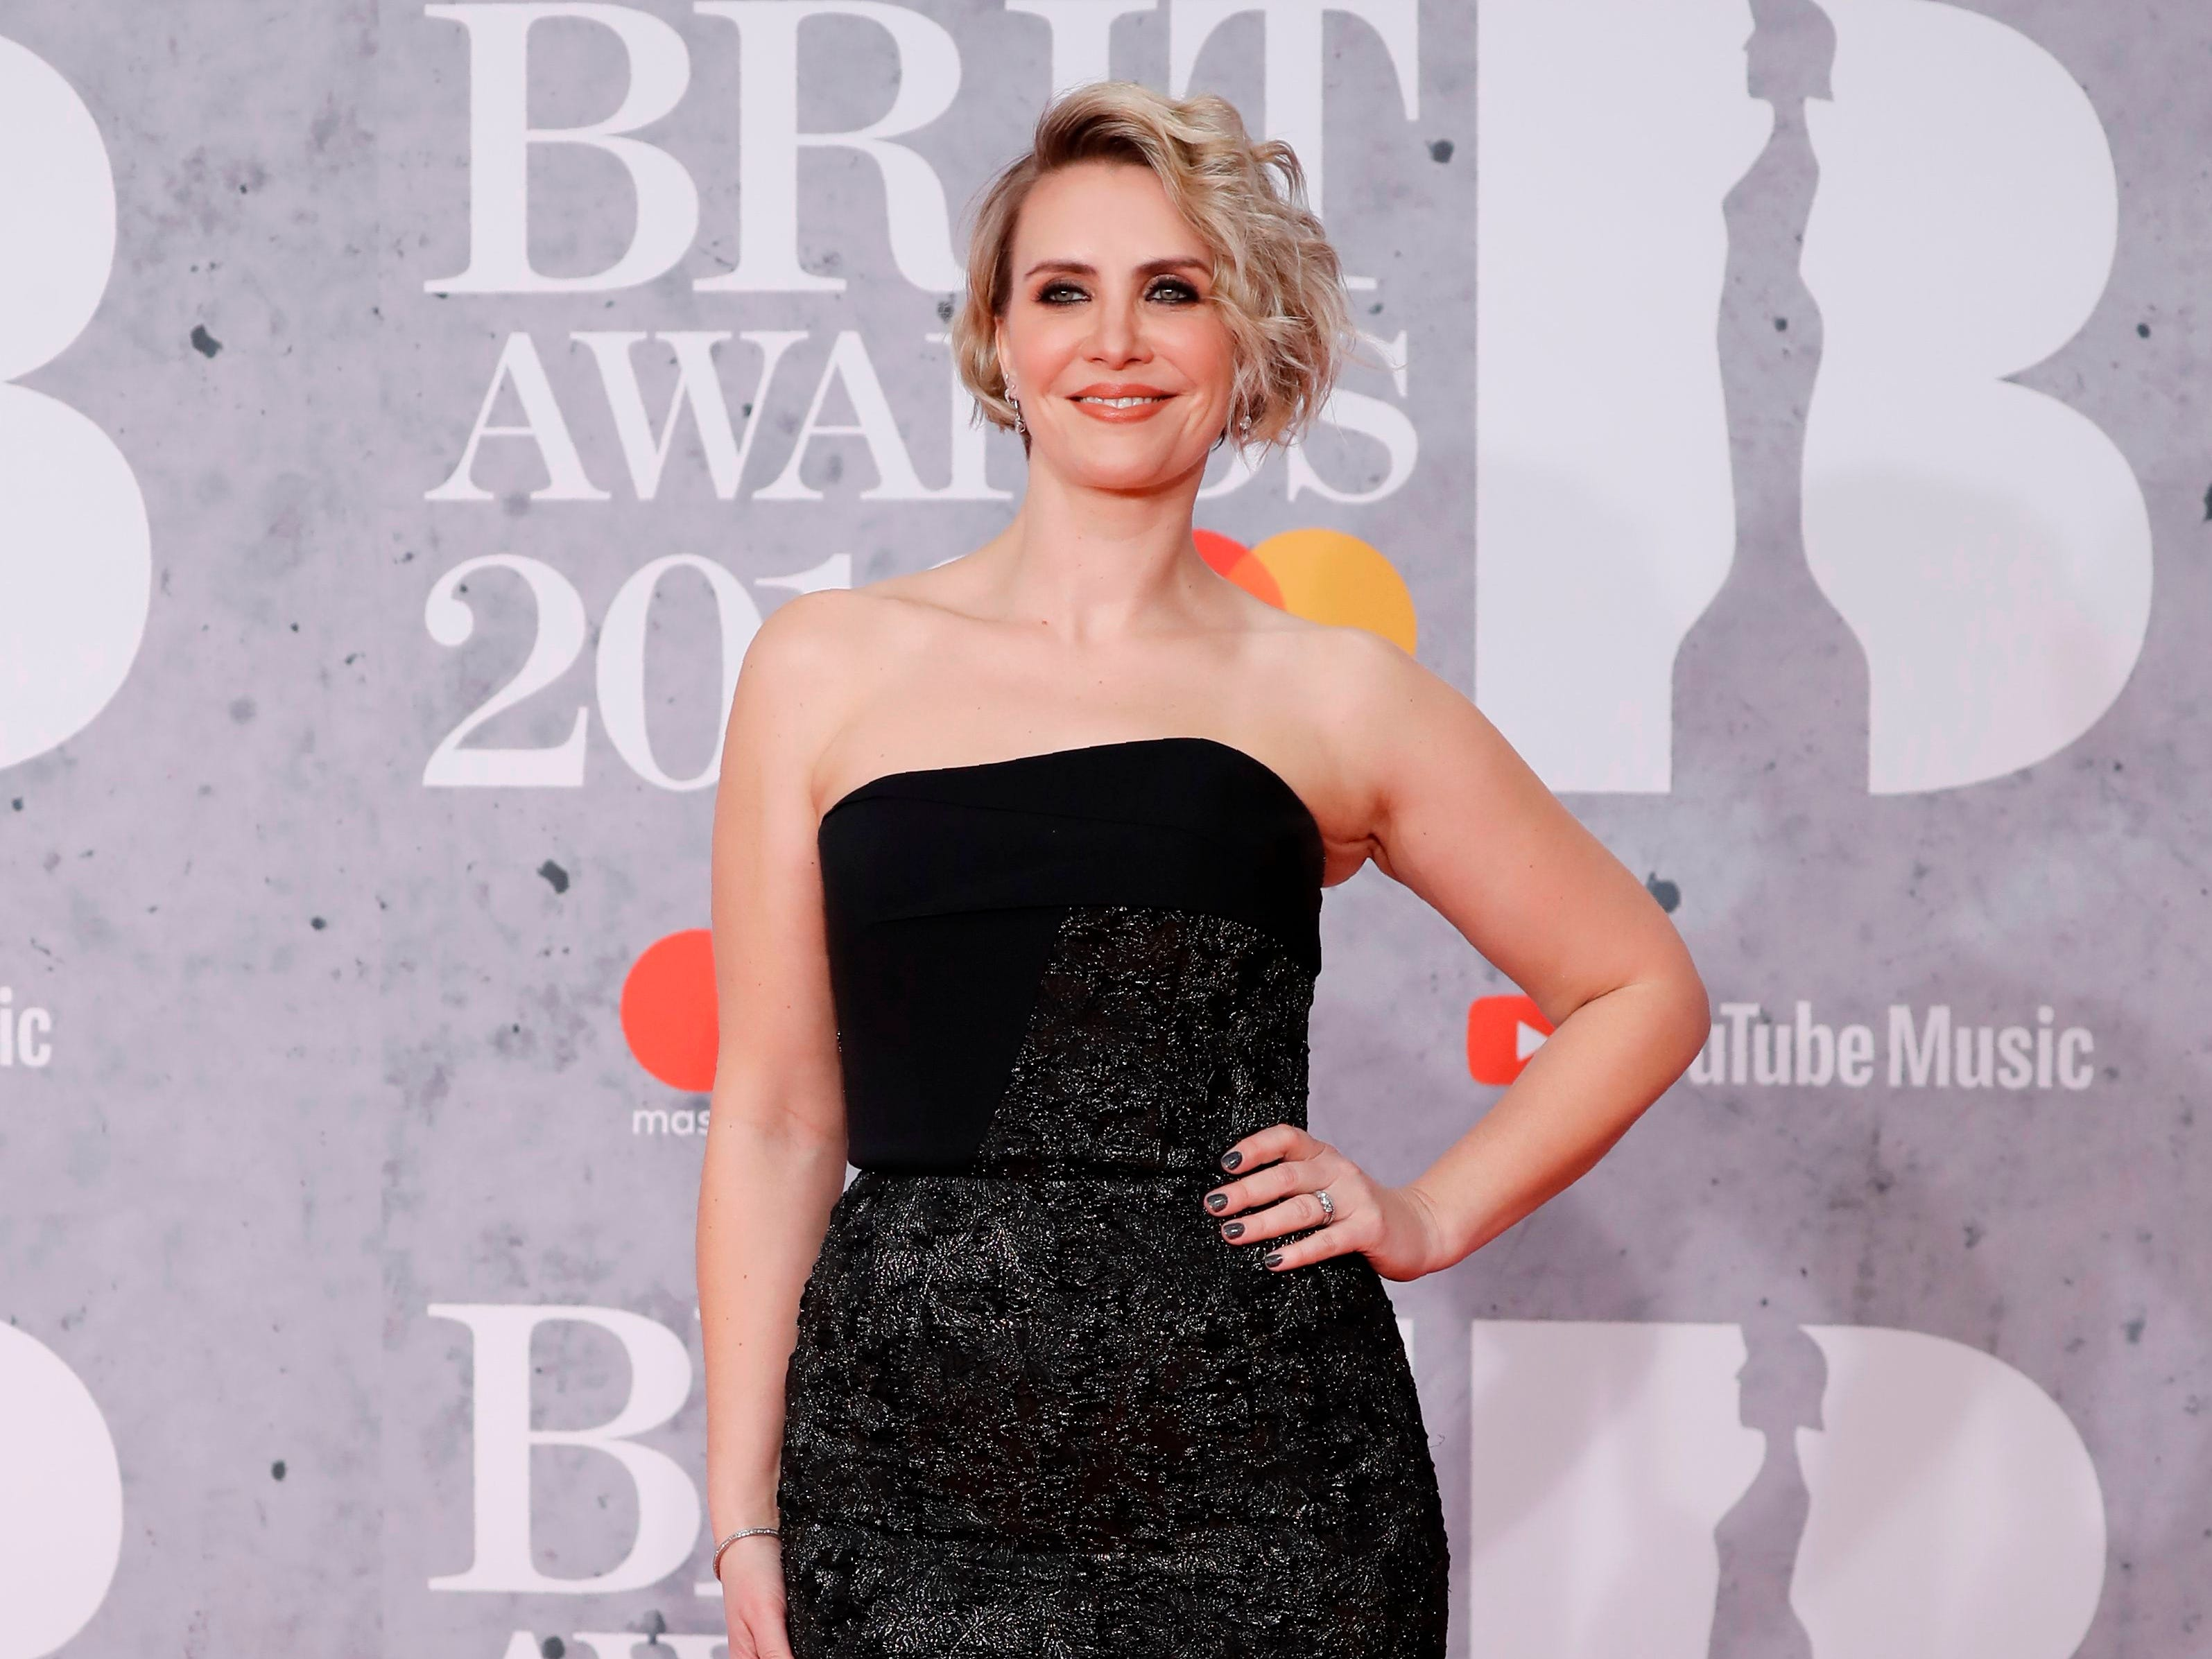 British singer-songwriter Claire Richards poses on the red carpet on arrival for the BRIT Awards 2019 in London on February 20, 2019. (Photo by Tolga AKMEN / AFP) / RESTRICTED TO EDITORIAL USE  NO POSTERS  NO MERCHANDISE NO USE IN PUBLICATIONS DEVOTED TO ARTISTSTOLGA AKMEN/AFP/Getty Images ORIG FILE ID: AFP_1DO251